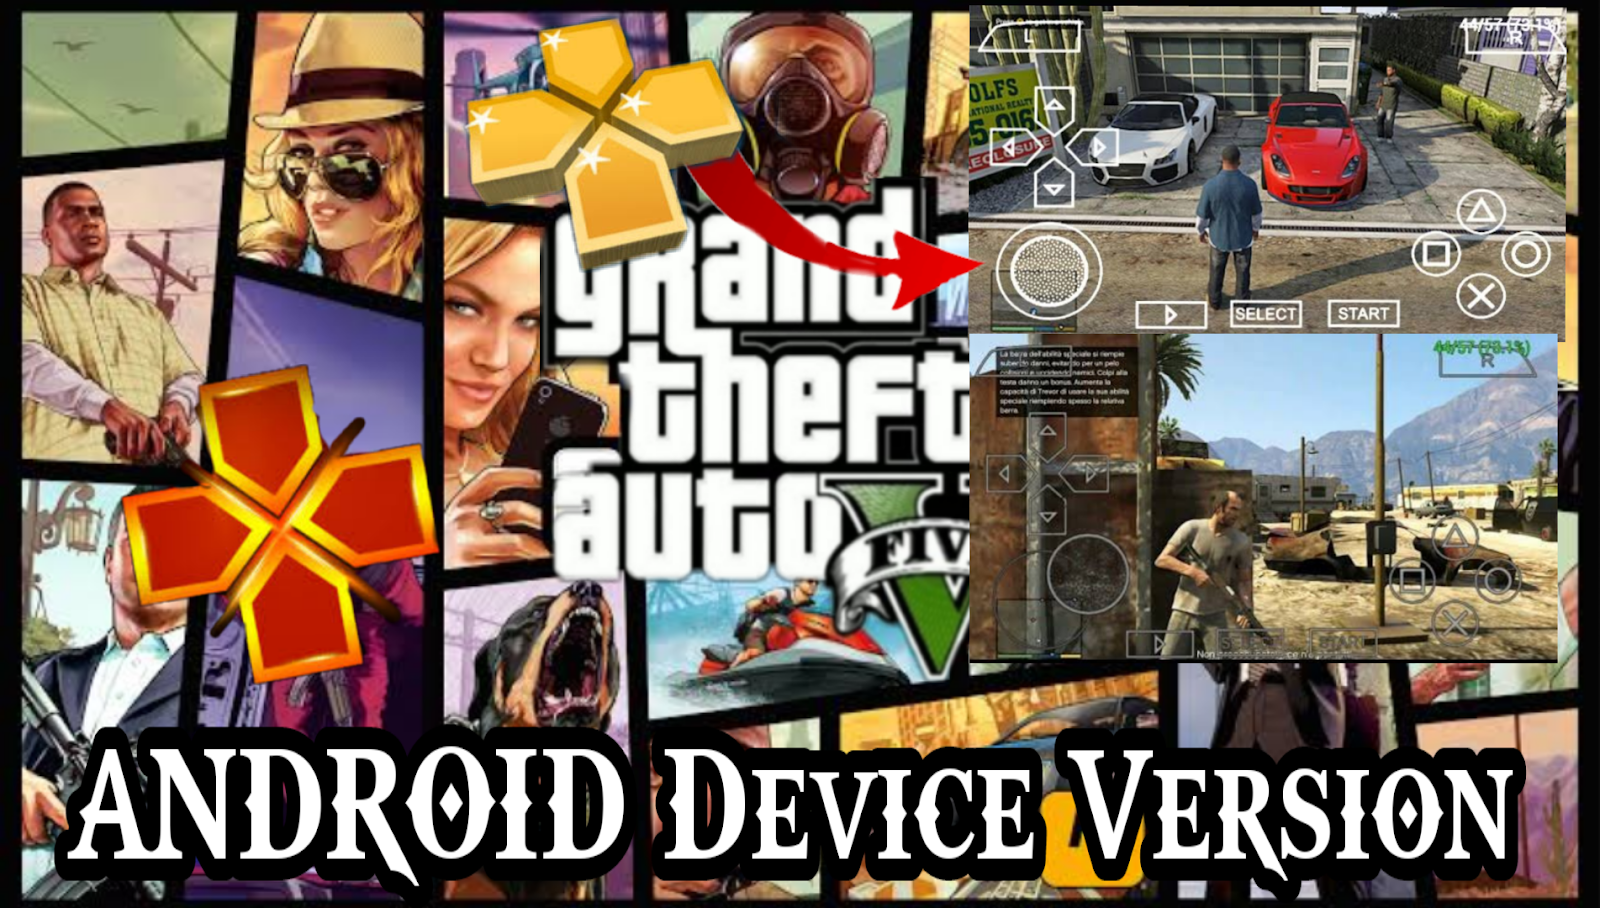 Gta game on psp | 5 Games Like GTA for PSP  2019-04-30